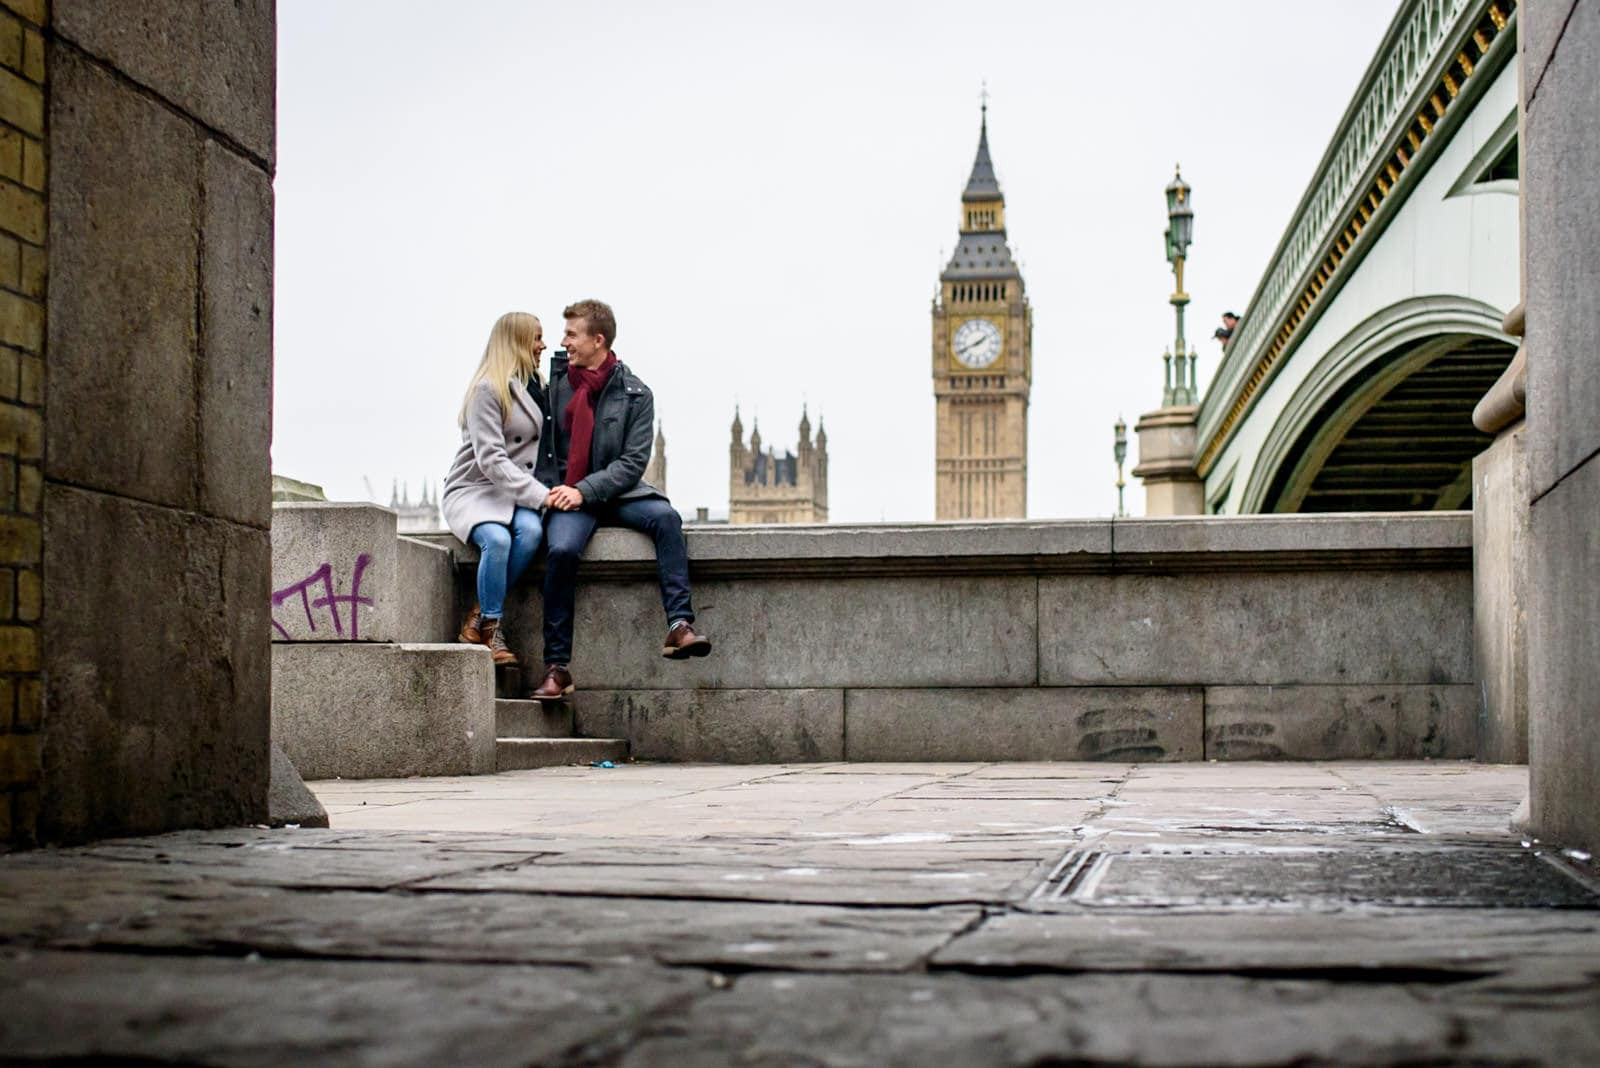 winter engagement photos with a couple by the Thames across from Big Ben